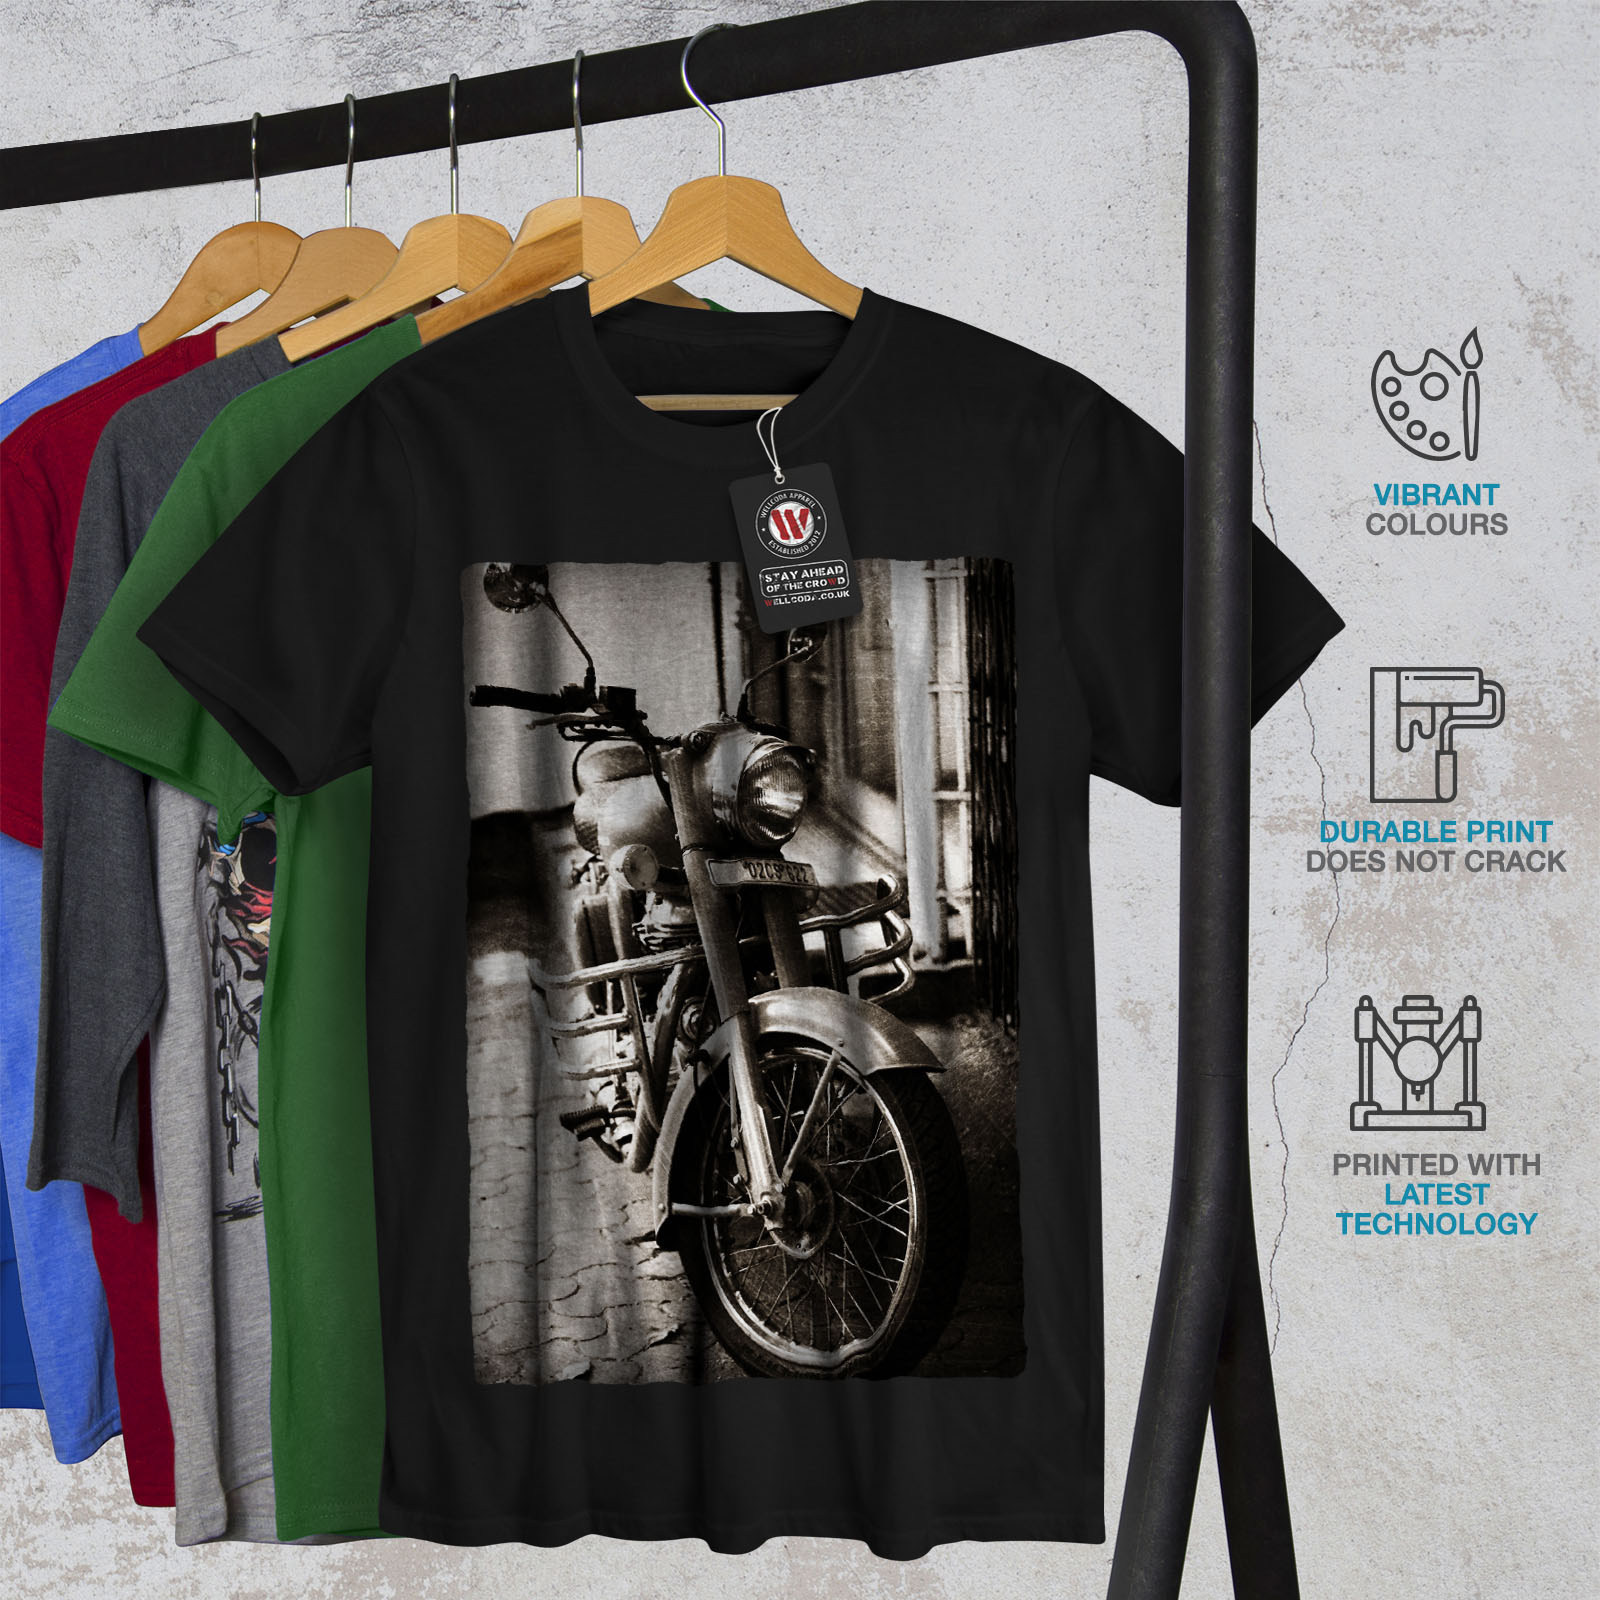 Wellcoda-Old-Retro-Mens-T-shirt-Motorcycle-Graphic-Design-Printed-Tee thumbnail 6